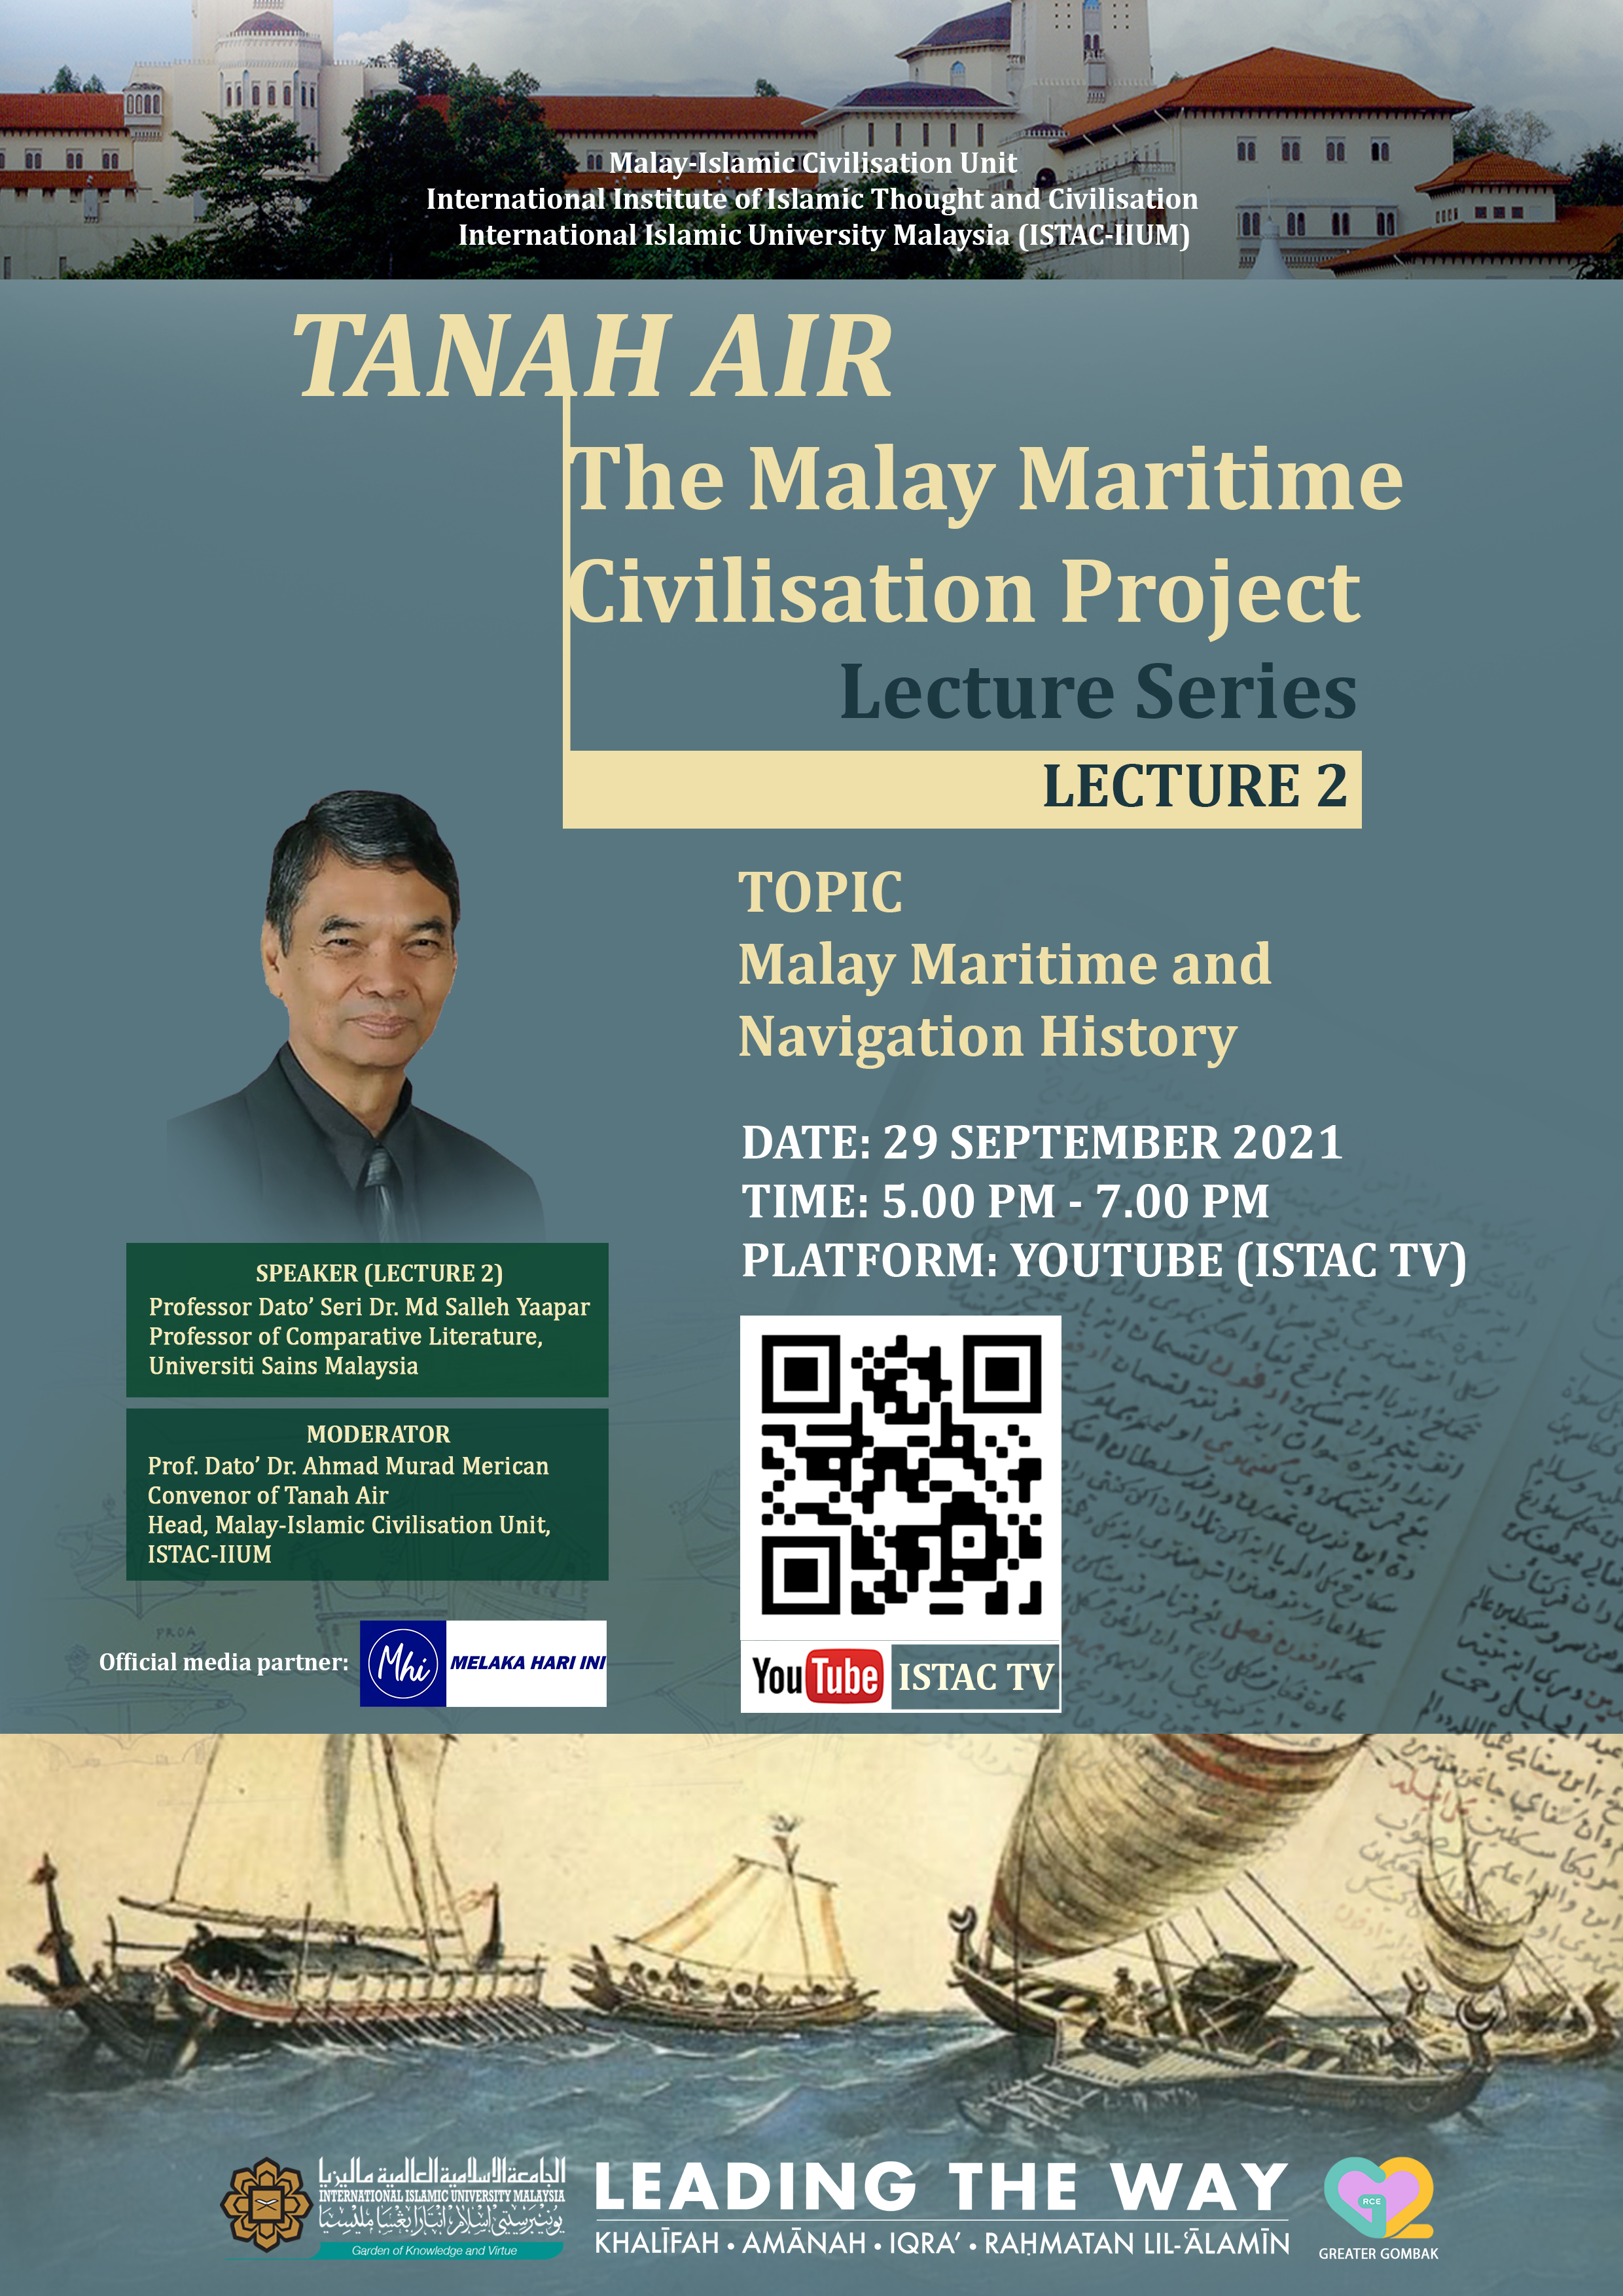 TANAH AIR: THE MALAY MARITIME CIVILISATION PROJECT_SECOND LECTURE